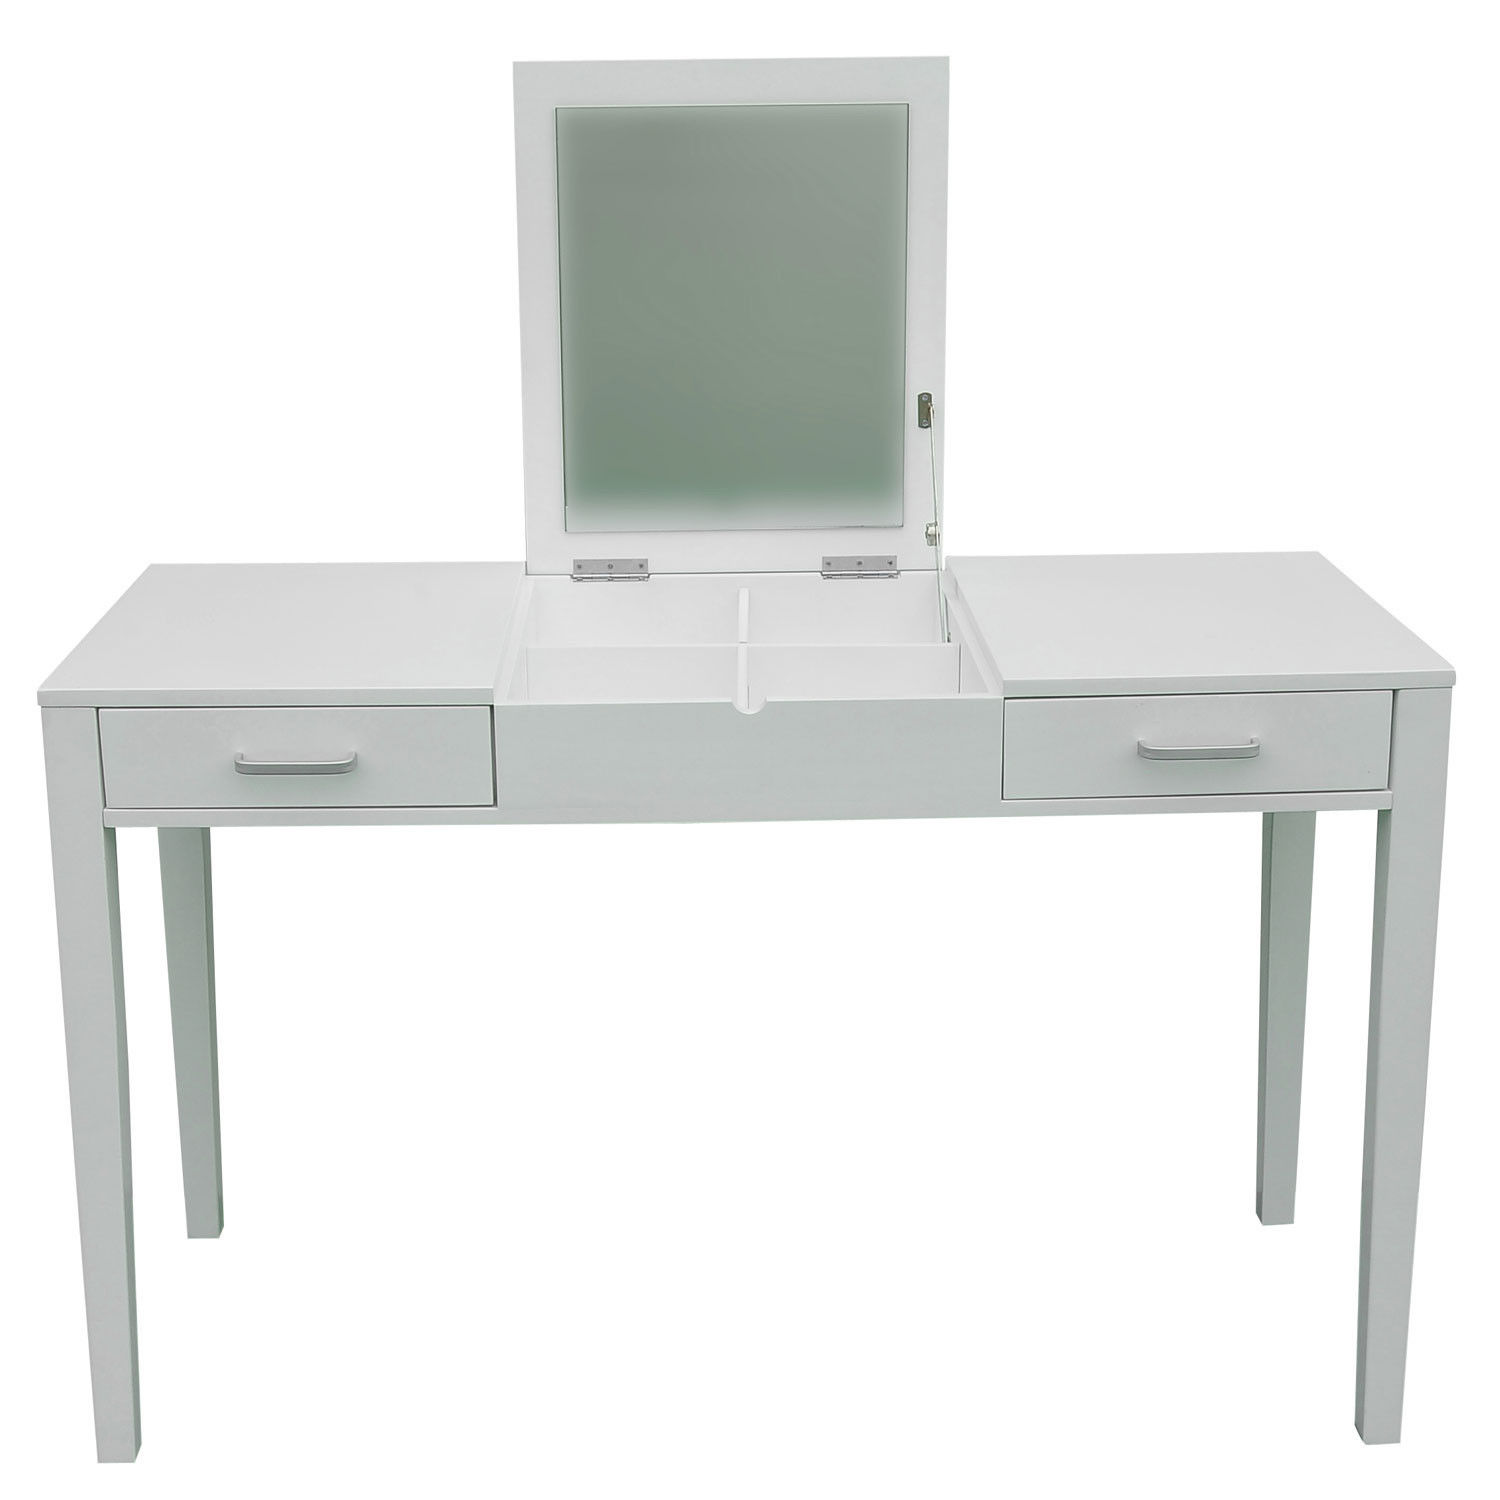 47 l vanity makeup dressing table desk make up lift top for Makeup vanity table and mirror